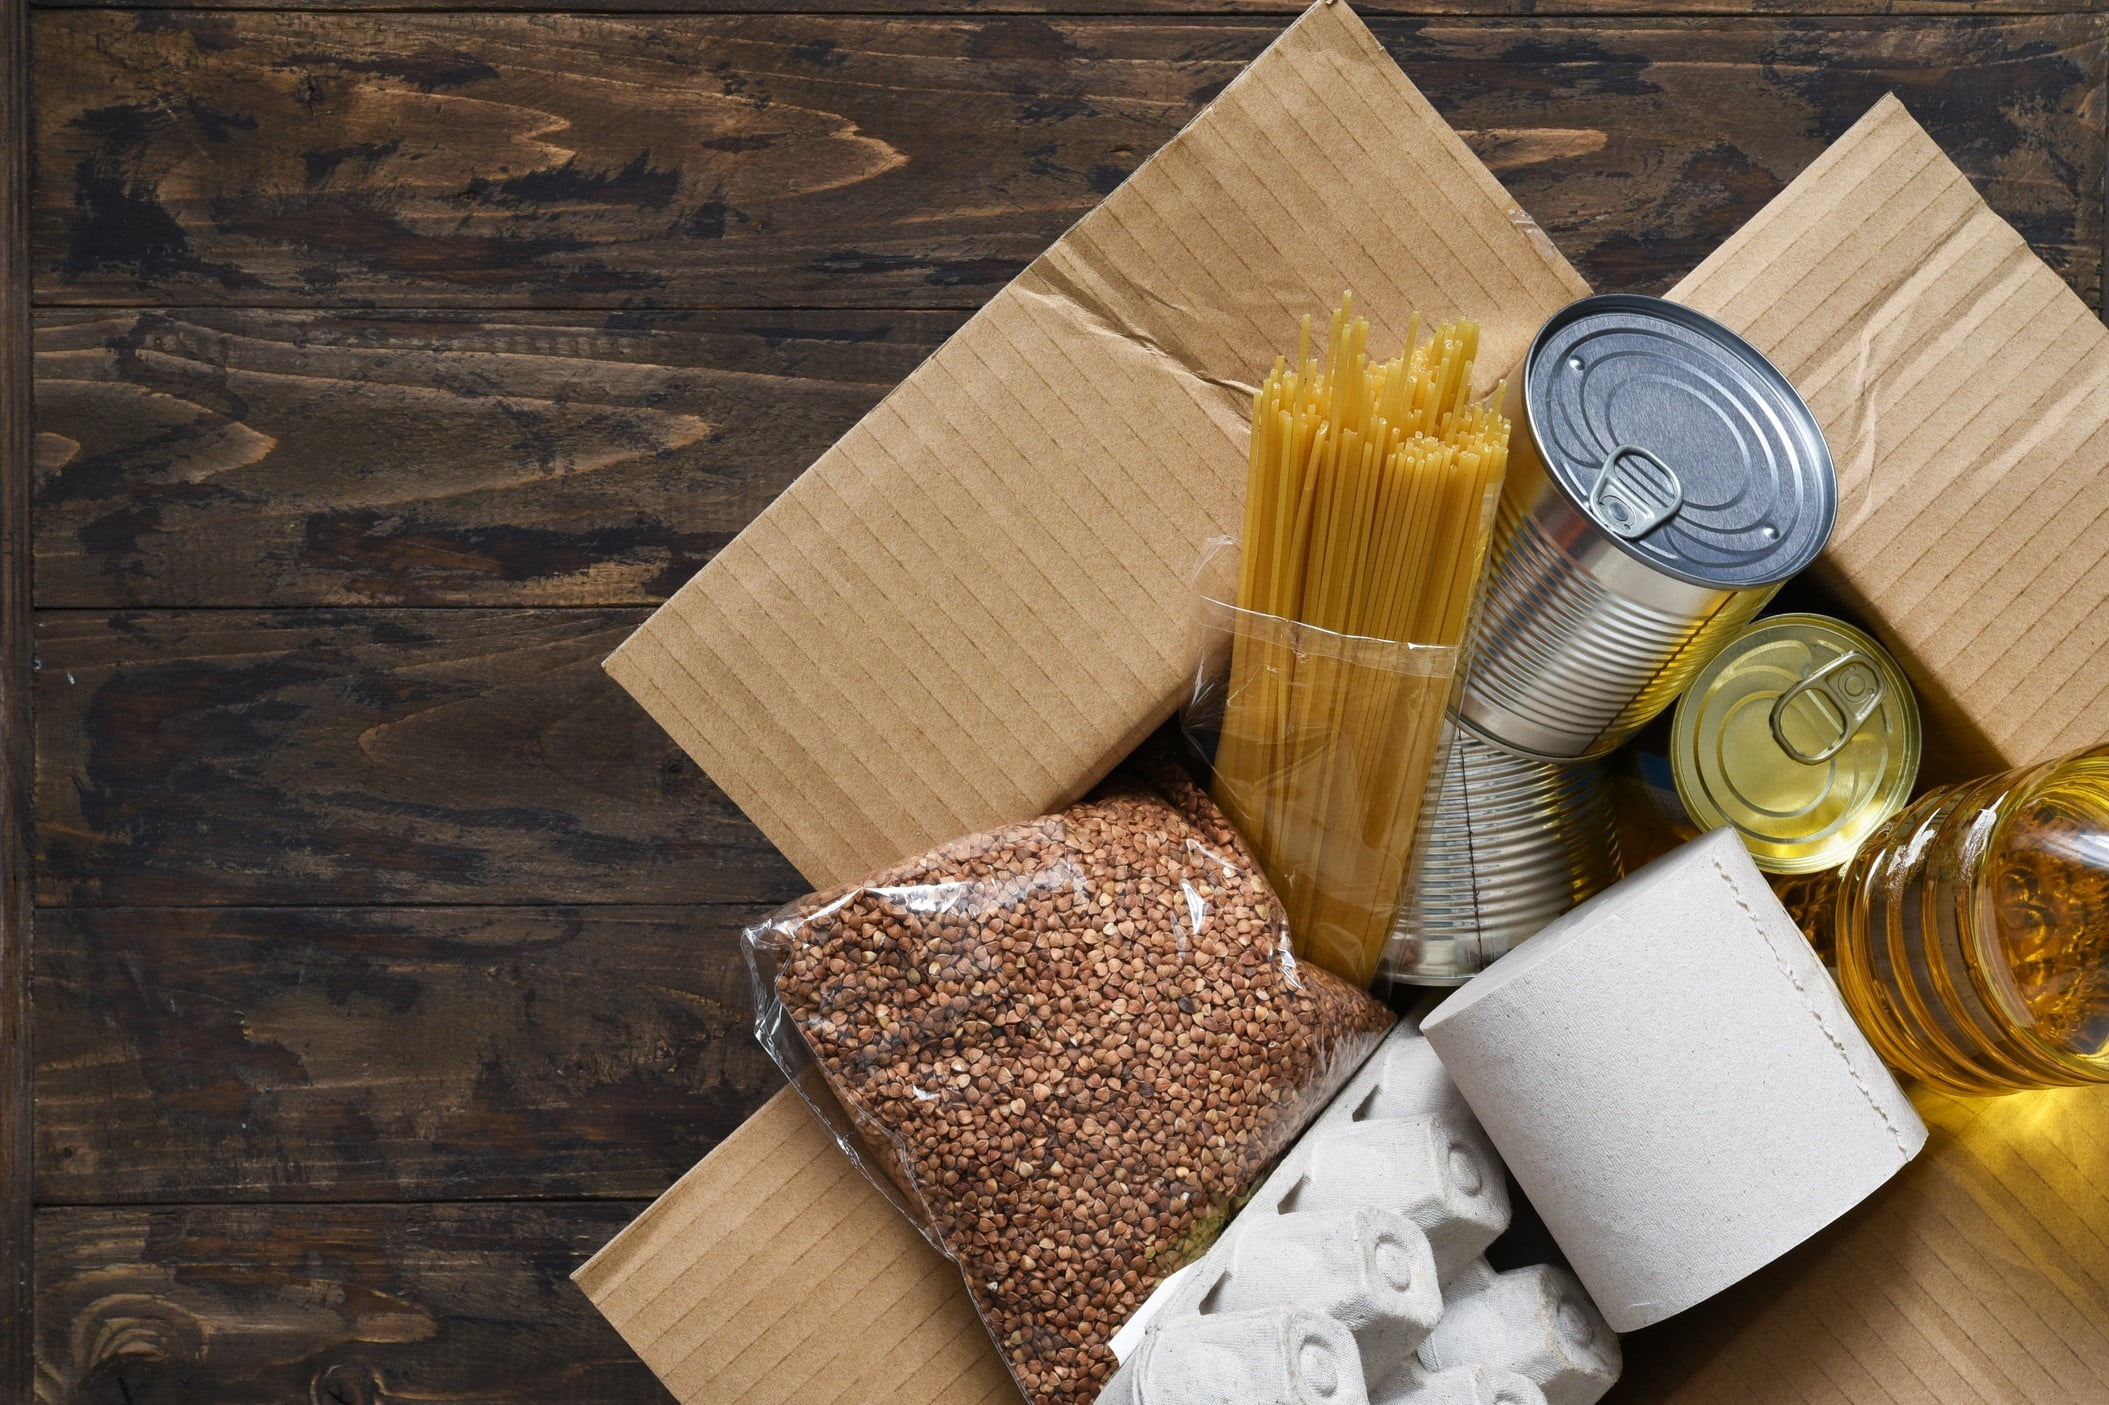 The 10 Best Survival Food Kits To Stock Up on in 2021